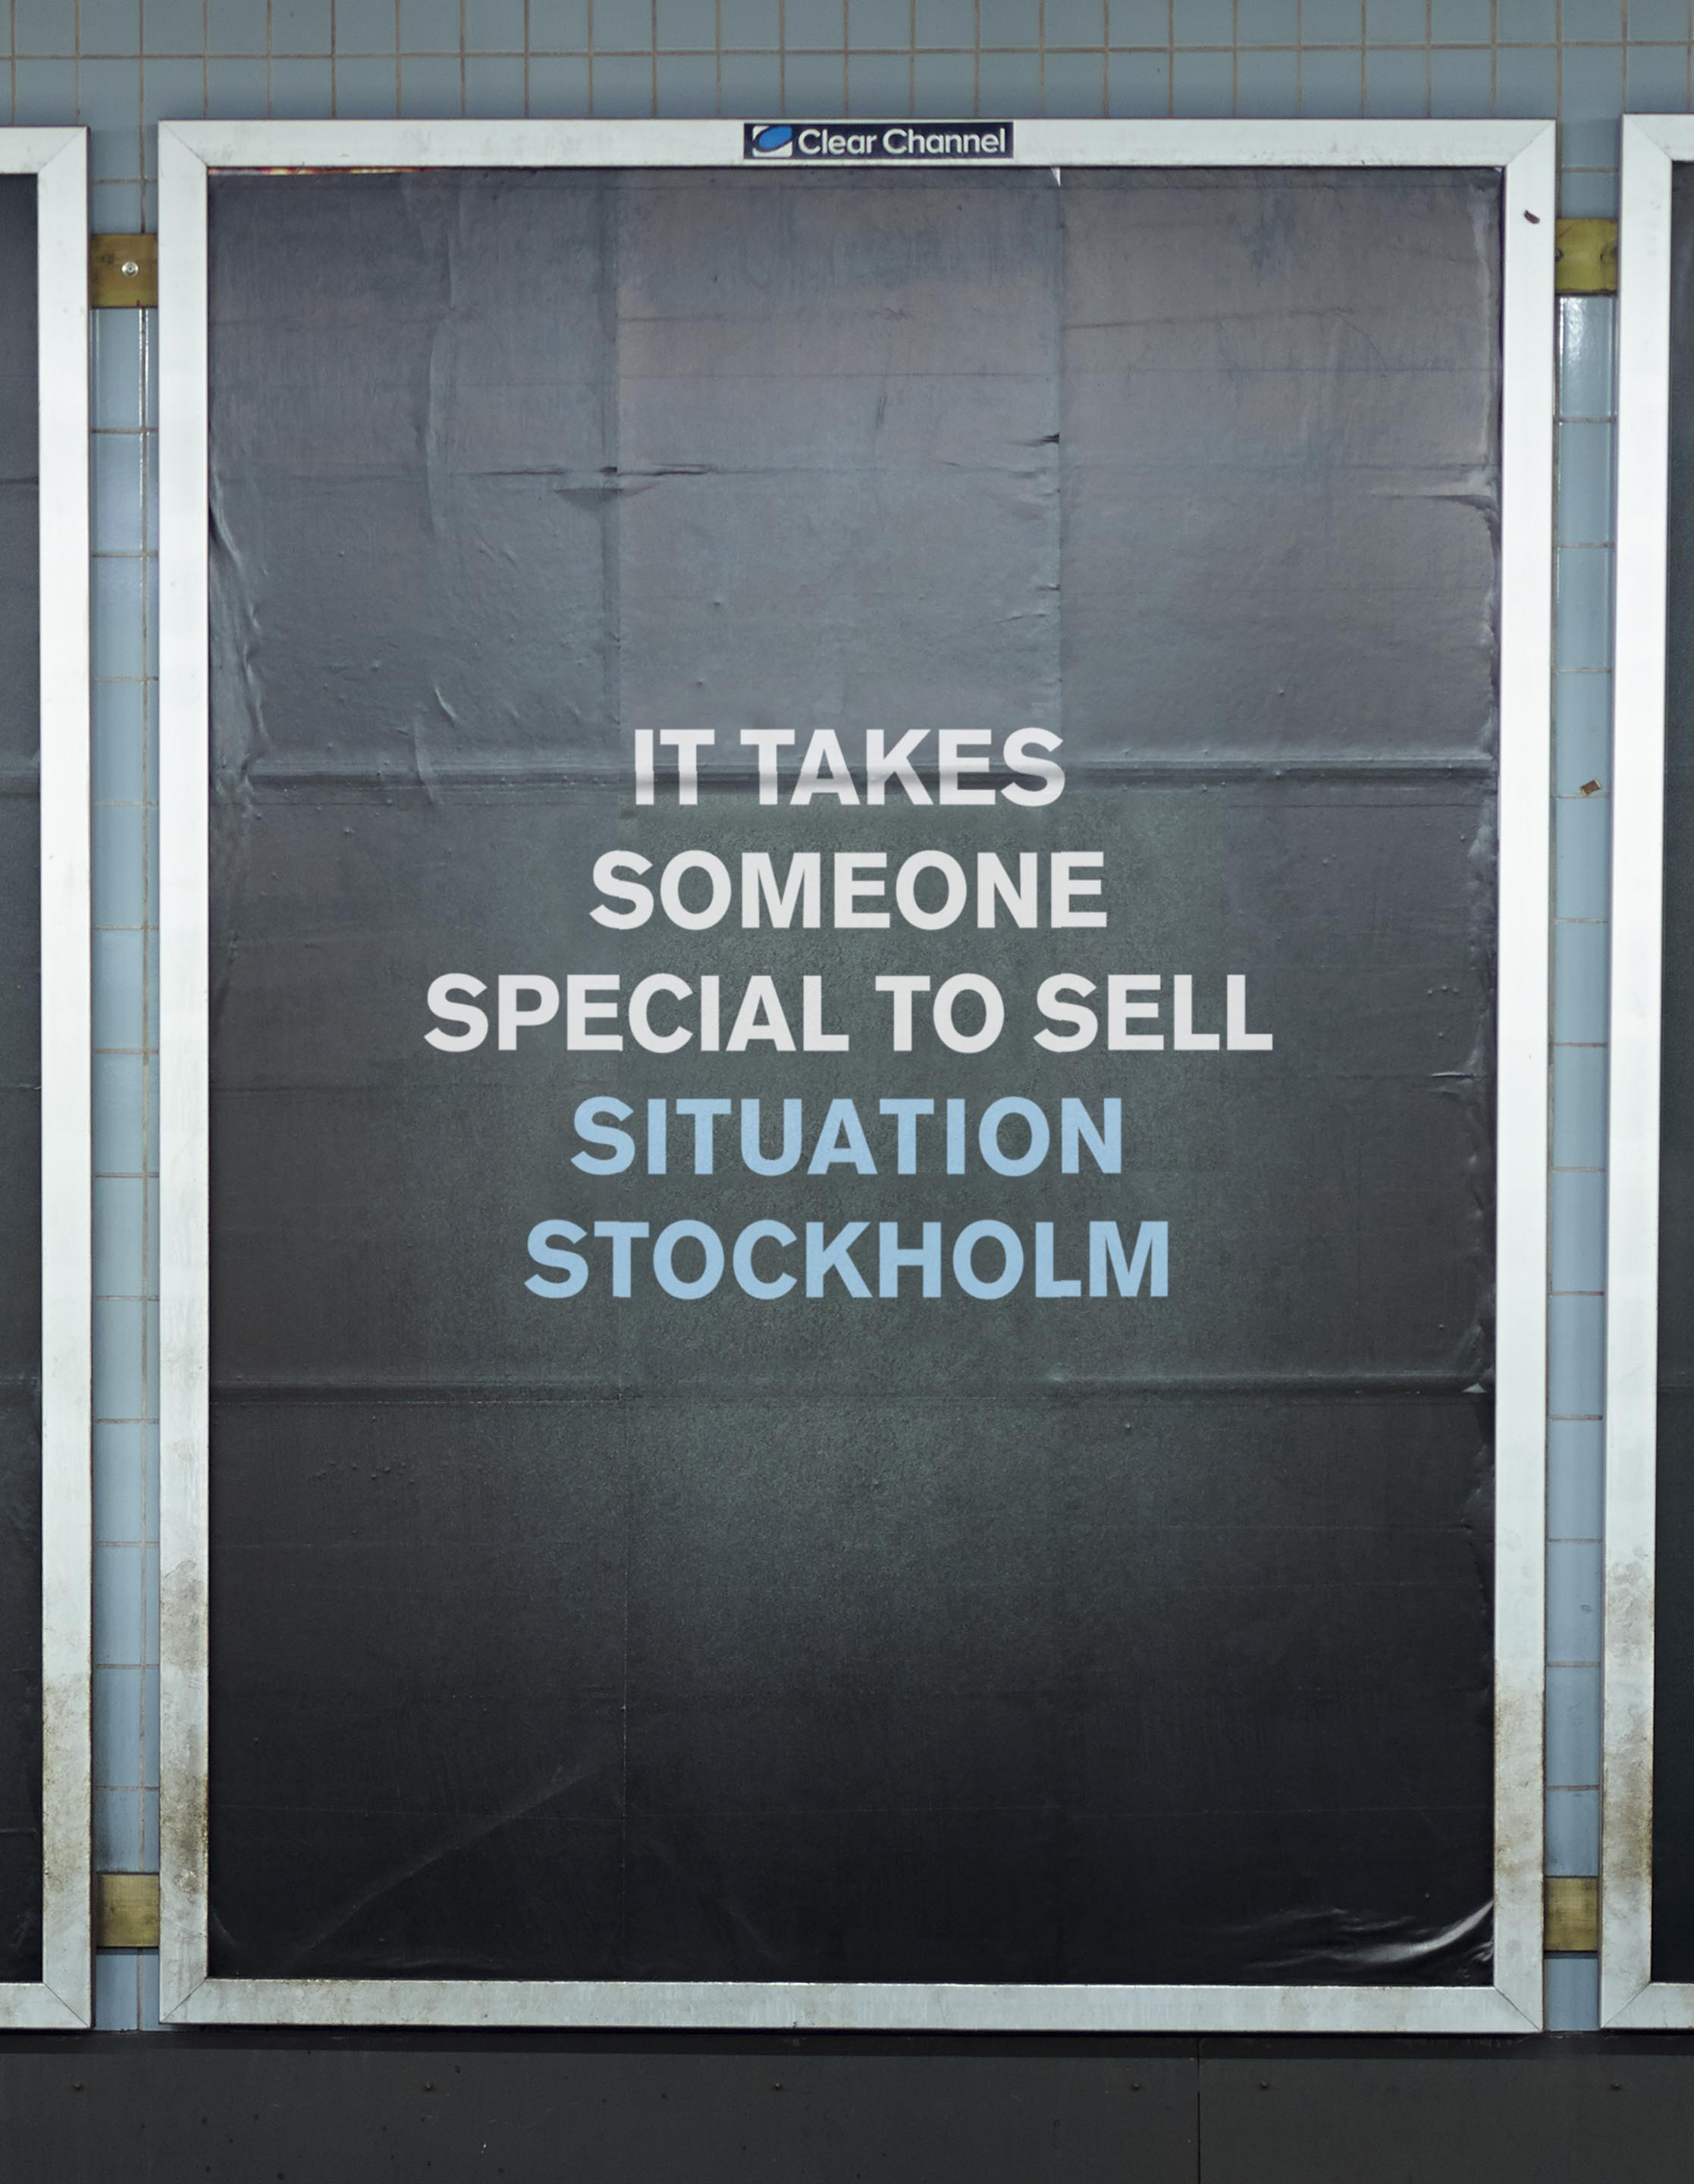 Situation-Stockholm-Magazine-CV3.jpg